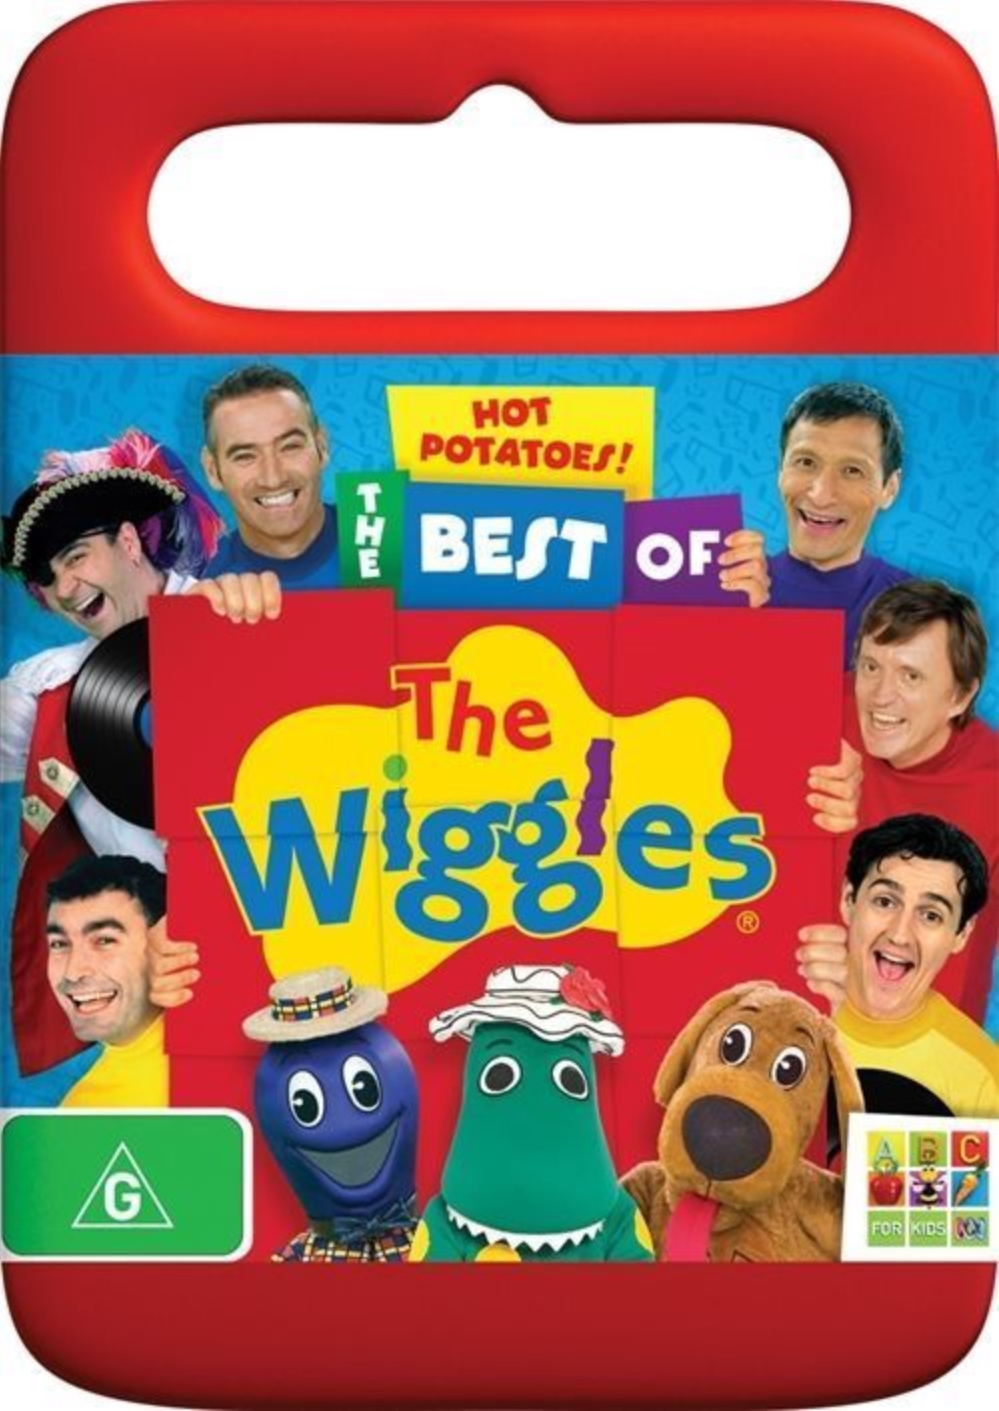 Hot Potatoes! The Best of The Wiggles (2010 video)